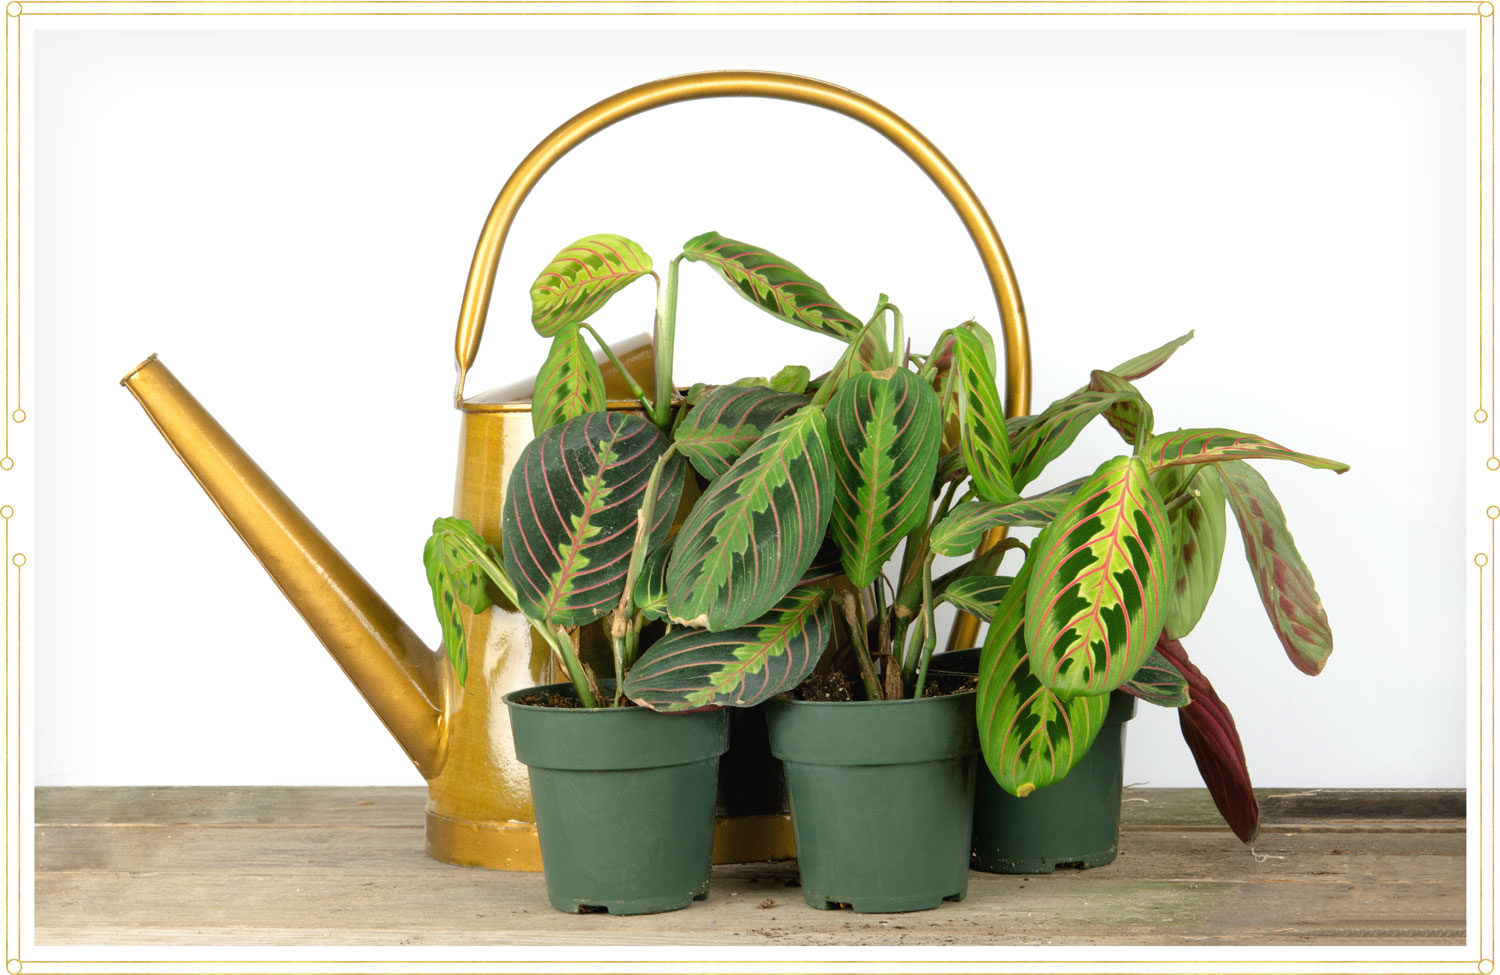 image of three green prayer plants in front of a gold watering pot